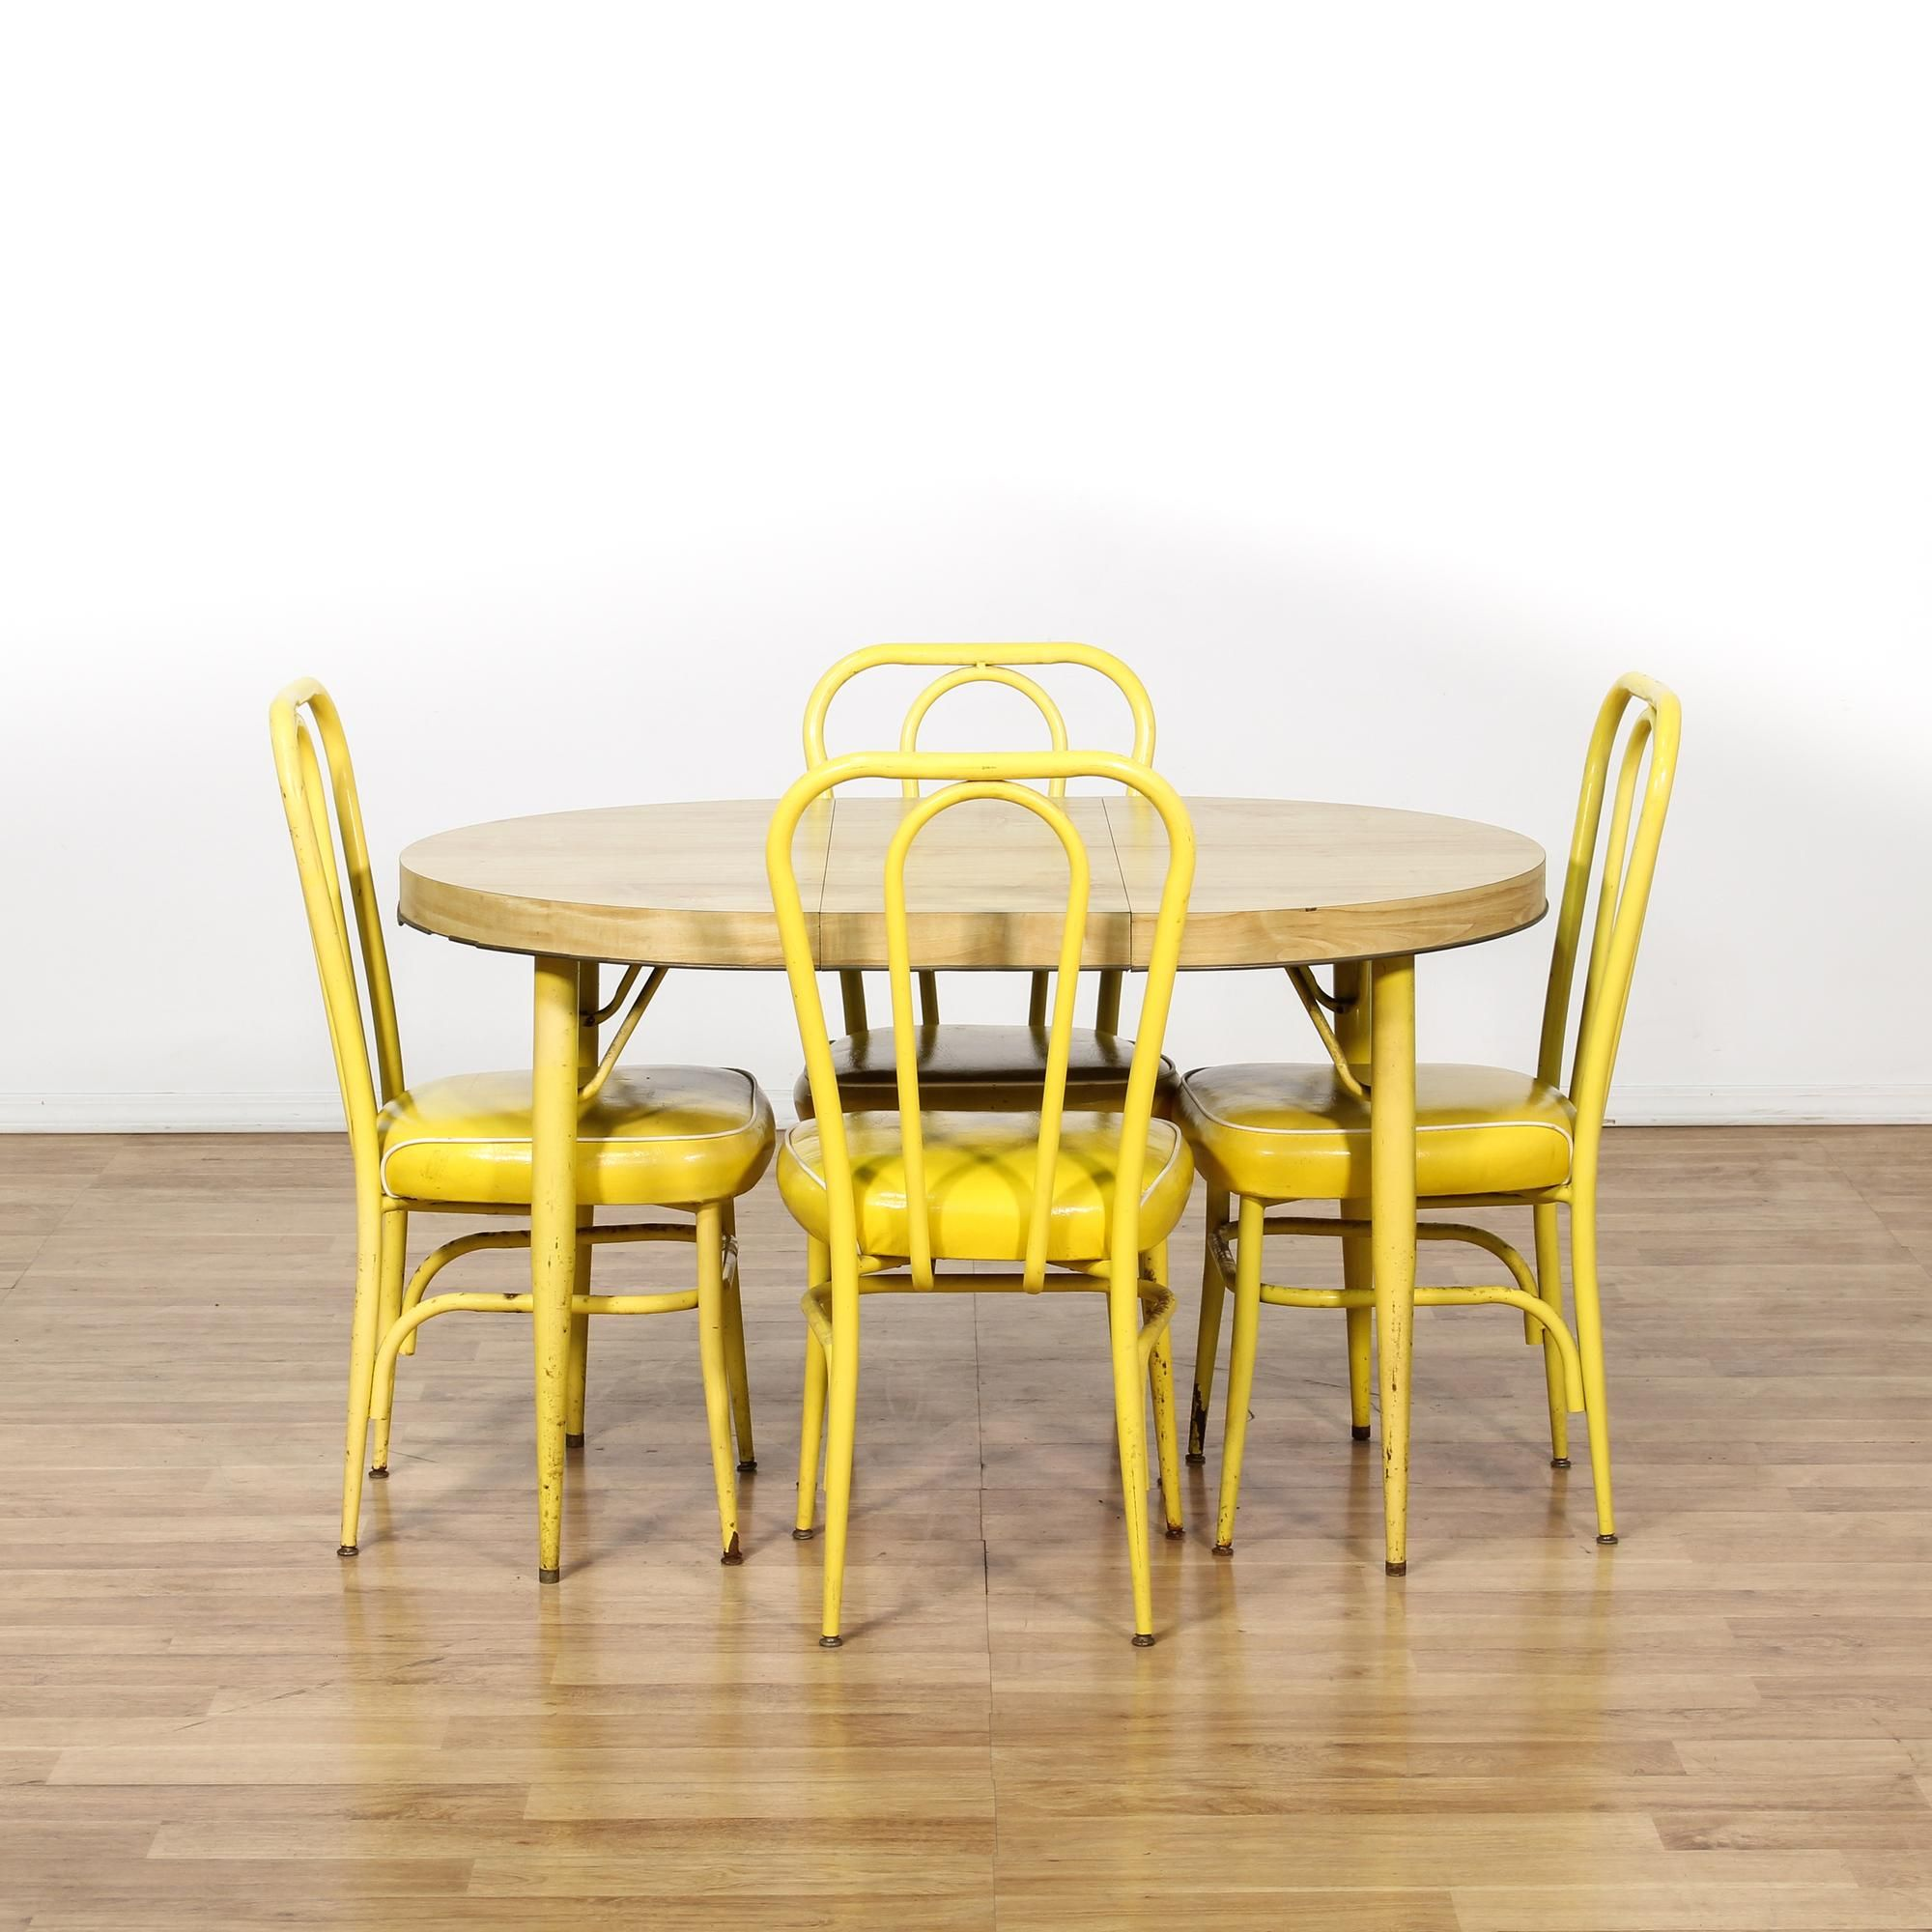 This Mid Century Modern Dining Set Is Featured In A Durable Metal With A  Distressed Vibrant